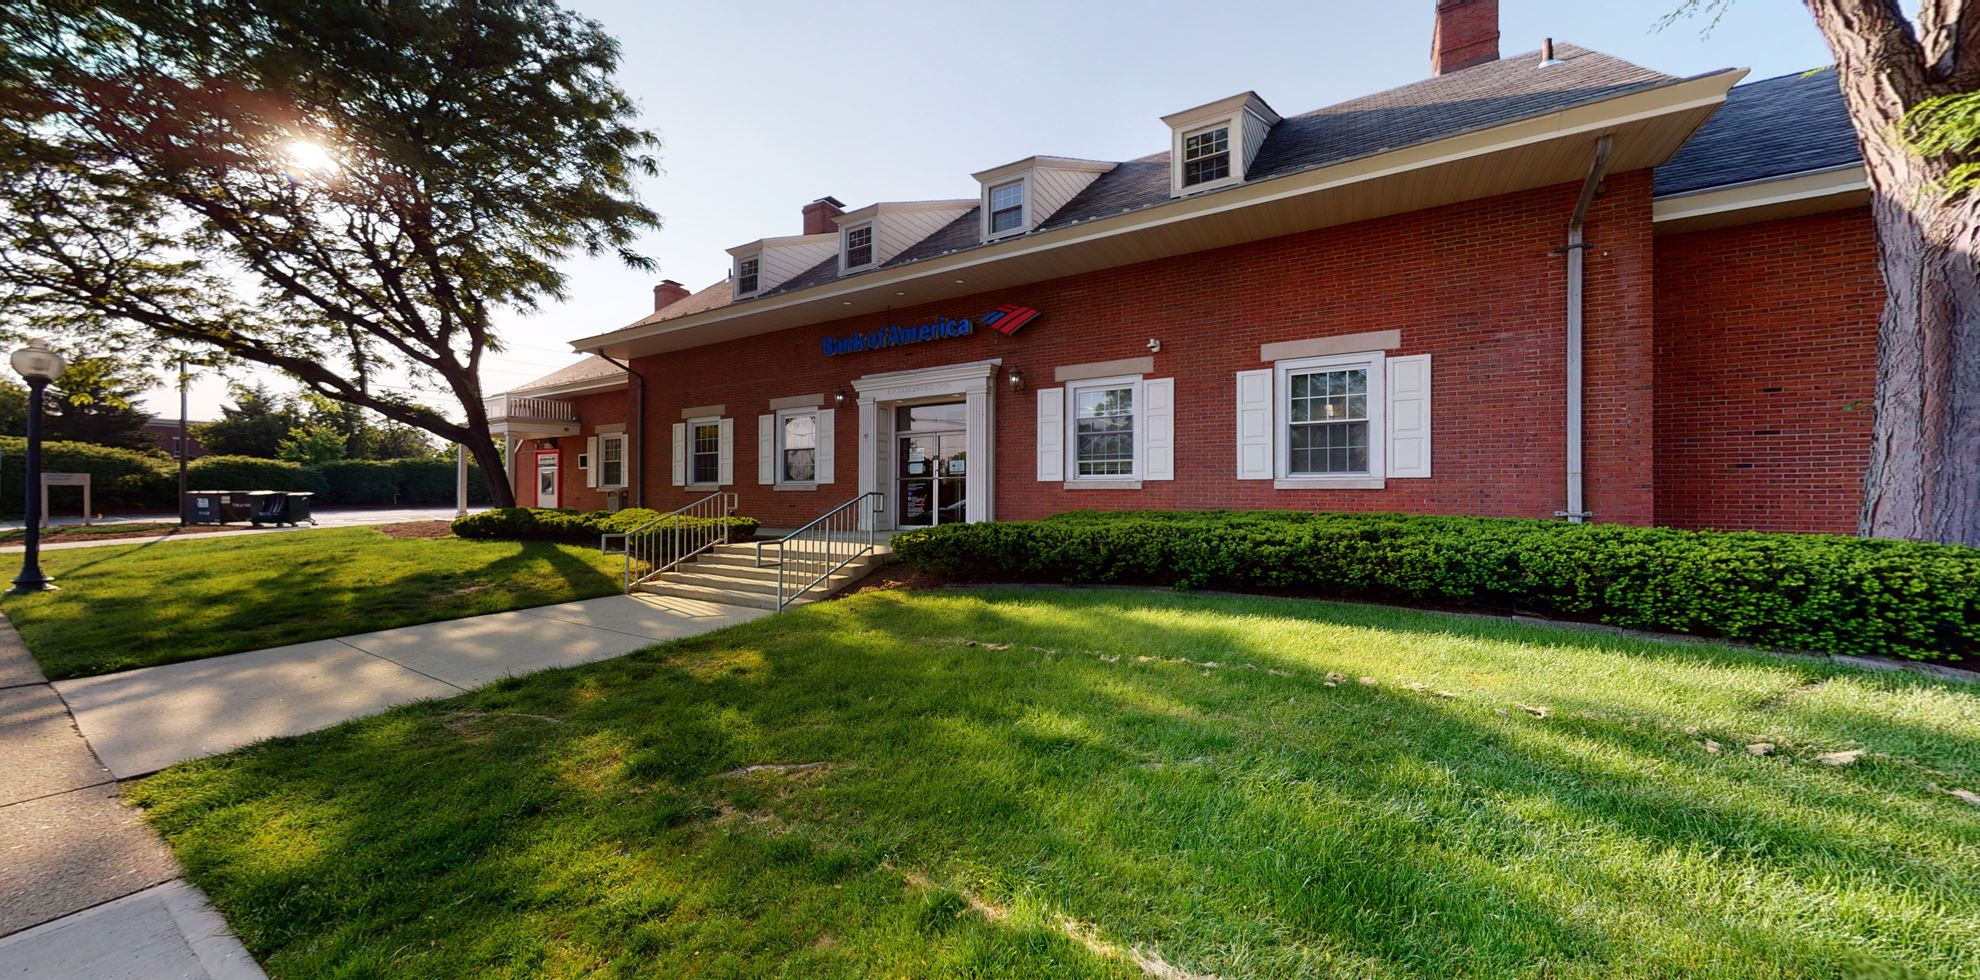 Bank of America financial center with drive-thru ATM   84 Park Ave, Hillsdale, NJ 07642